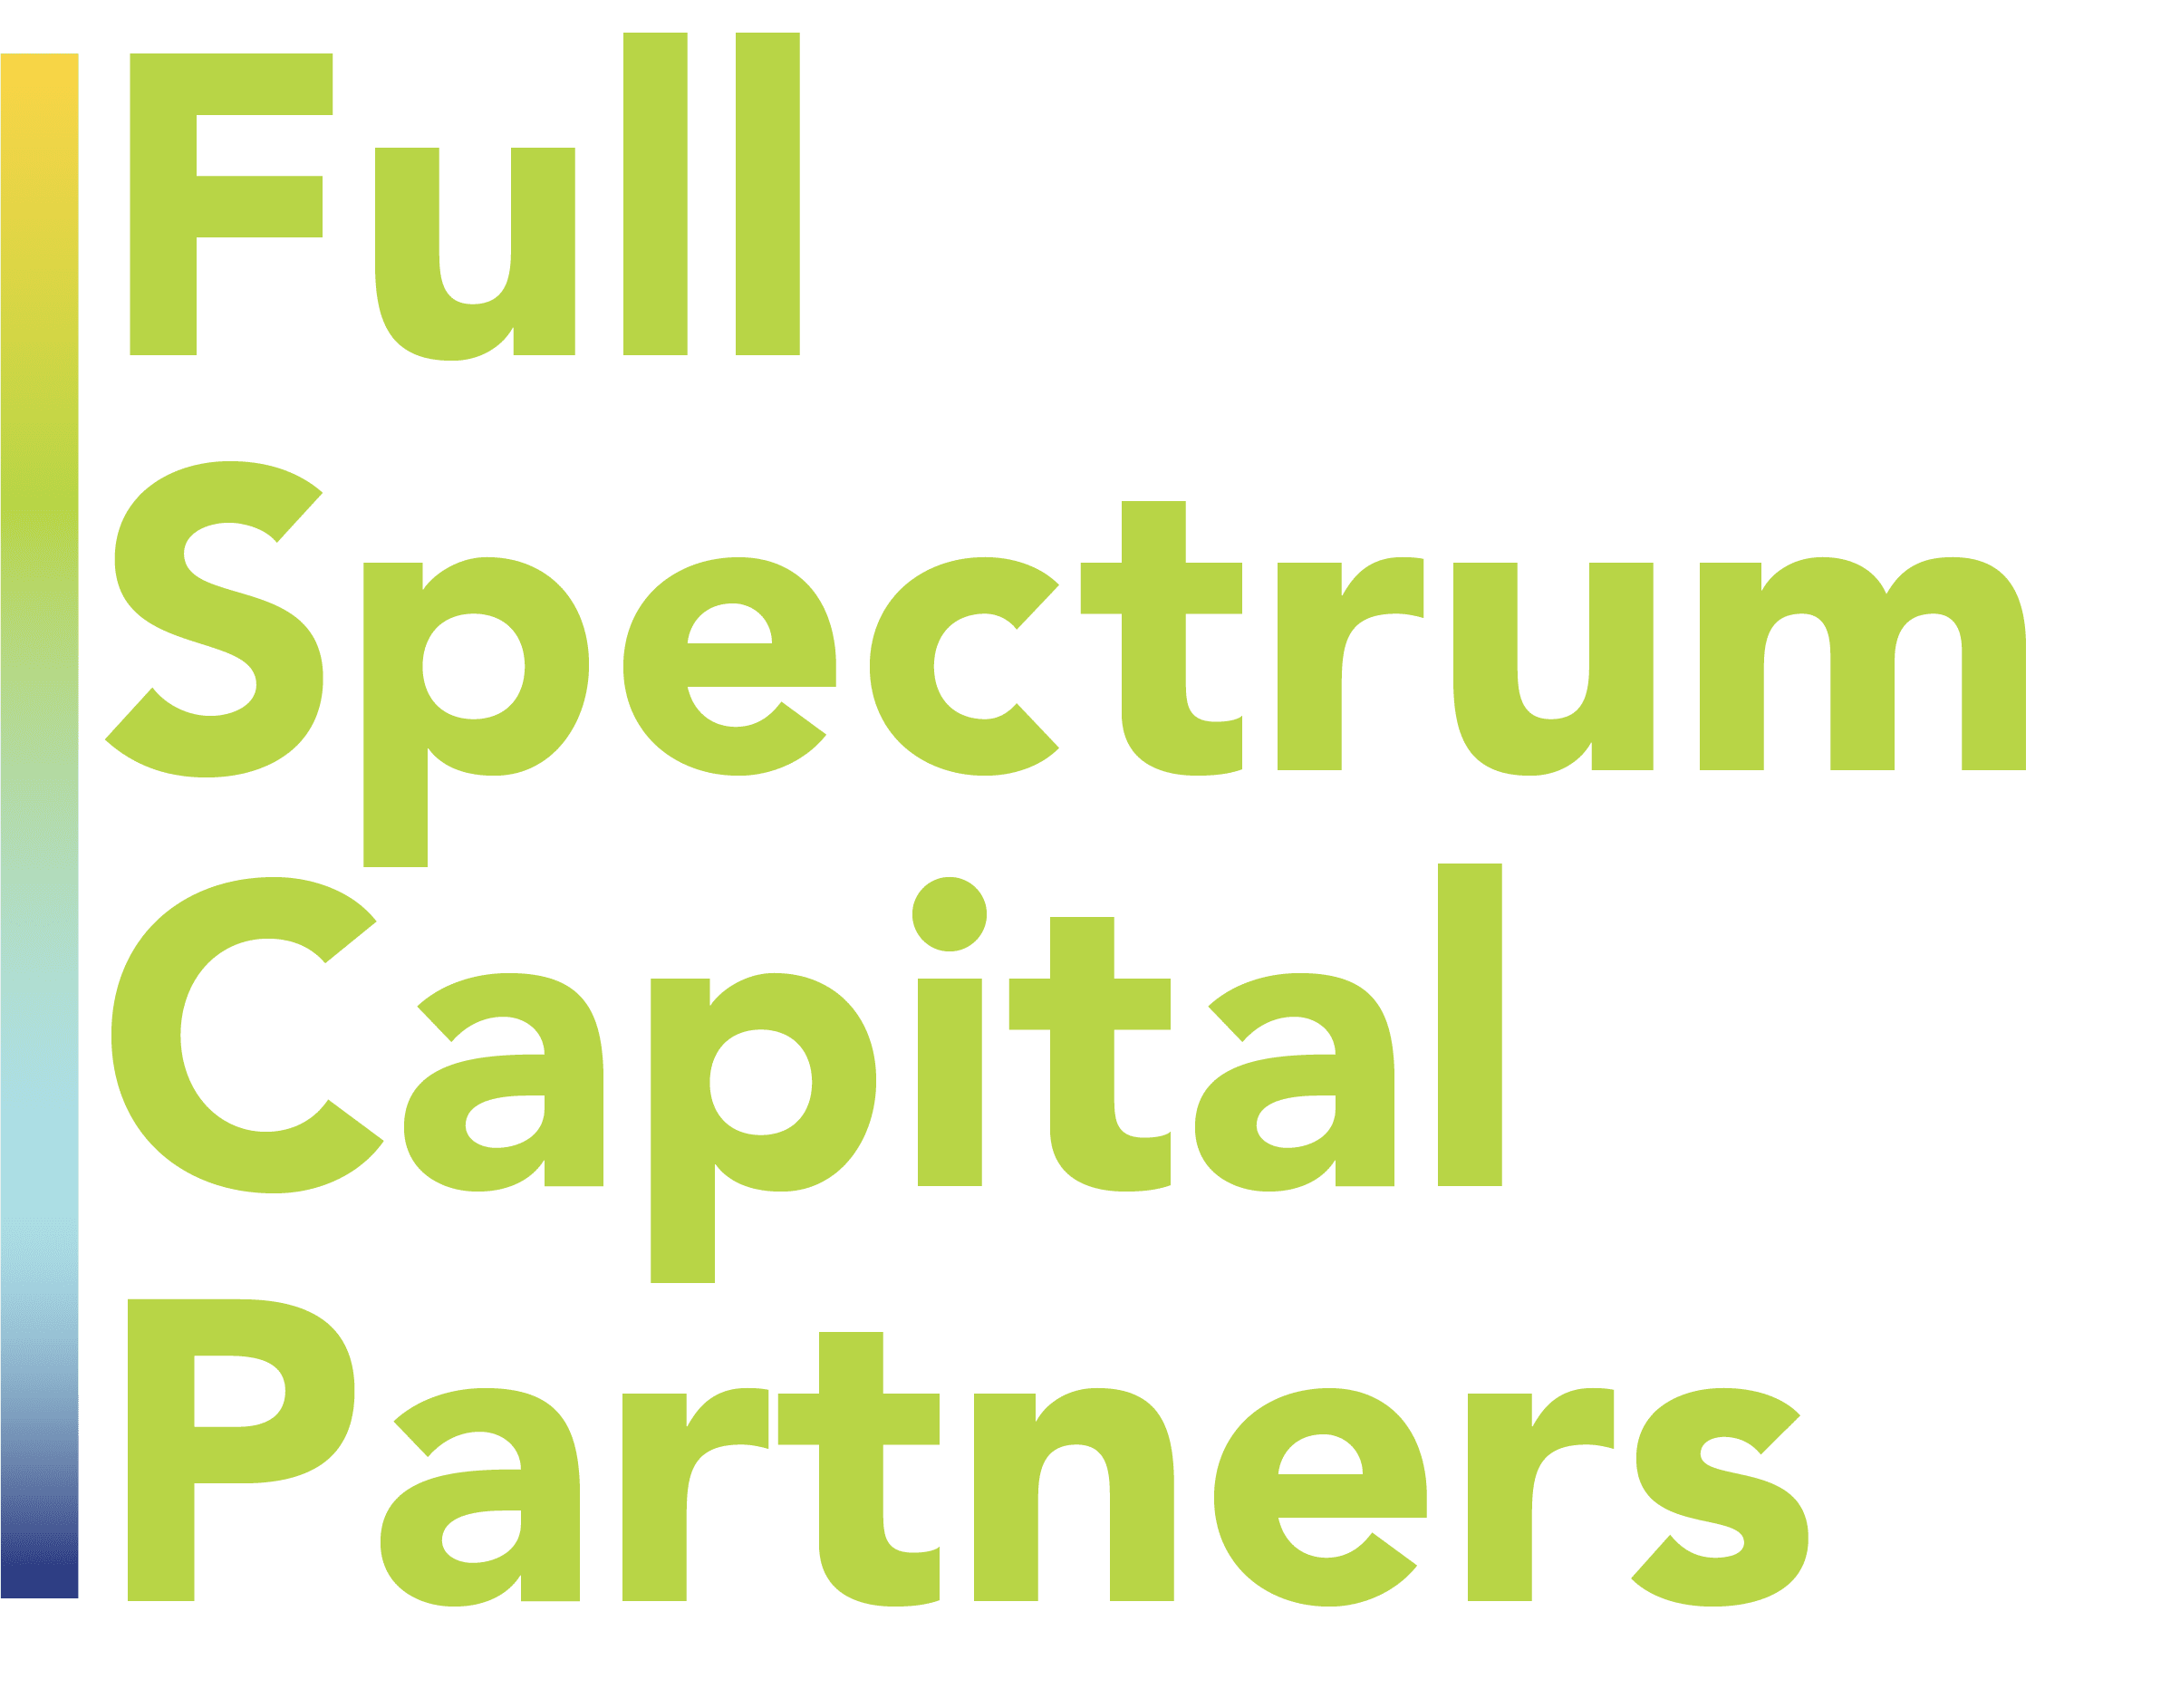 Full Spectrum Capital Partners, Connecting Community & Capital Stewards